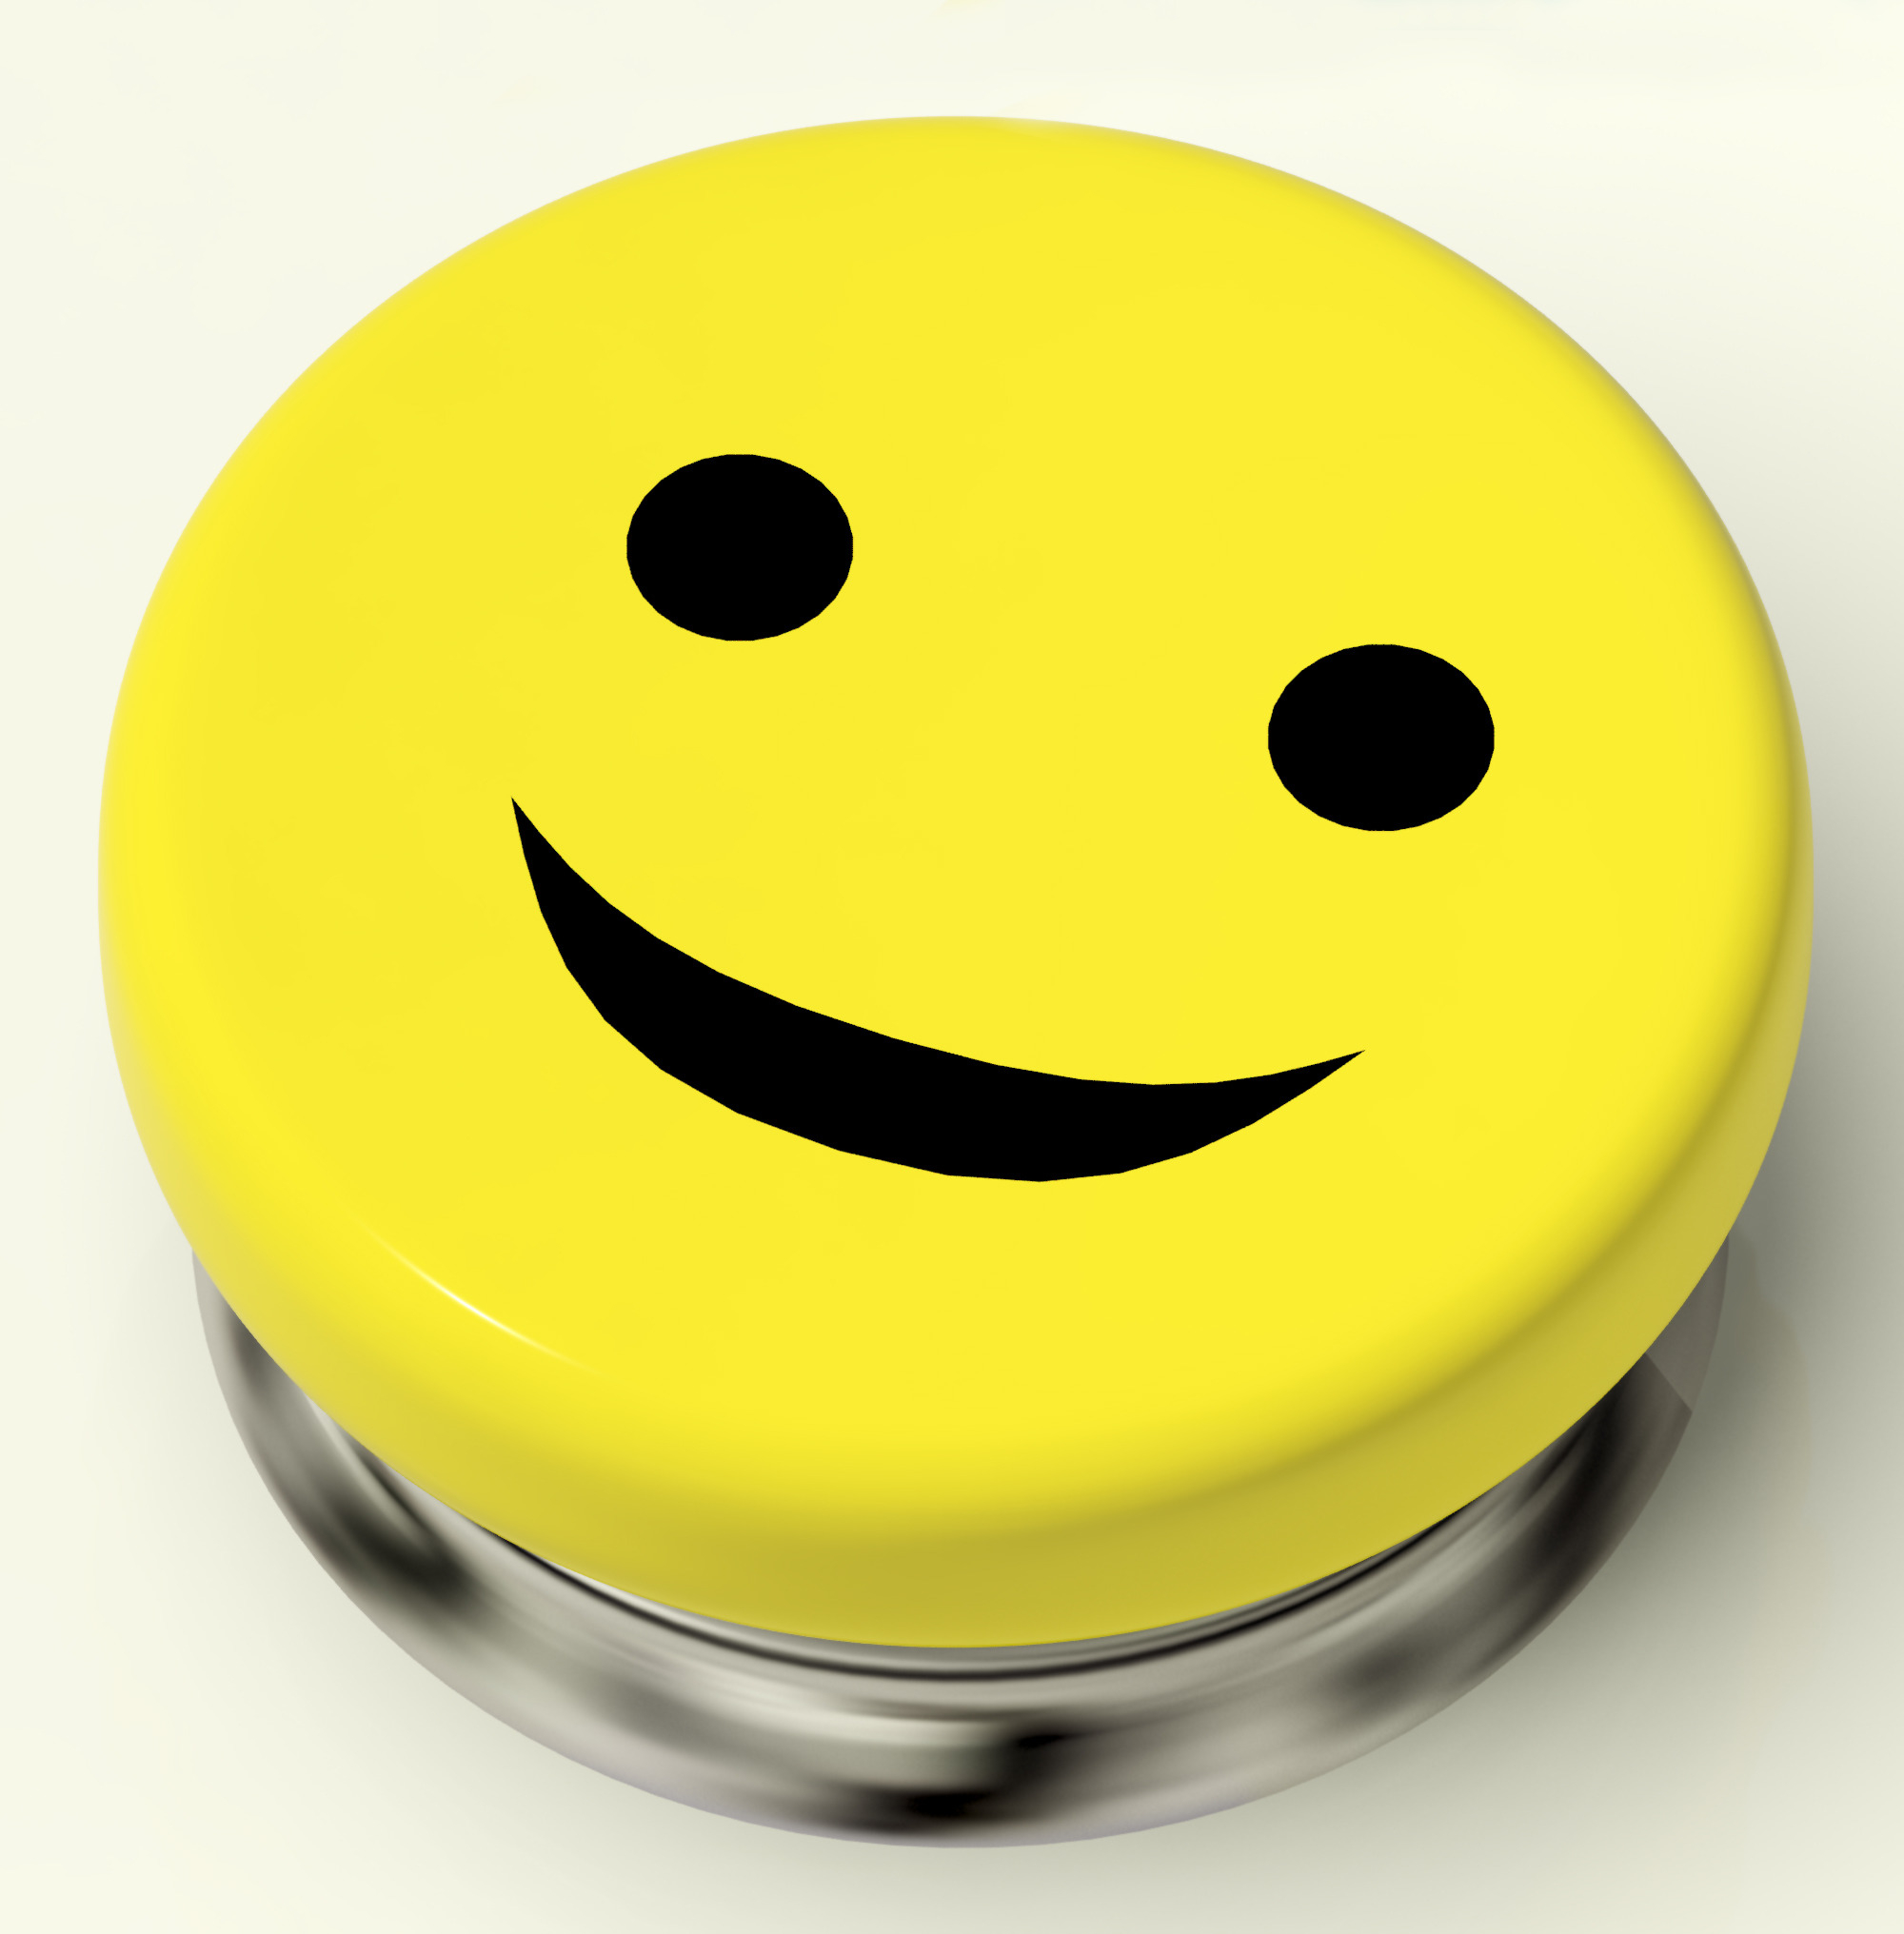 smiley-button-as-symbol-for-cheer-or-happiness_mywszrd_.jpg